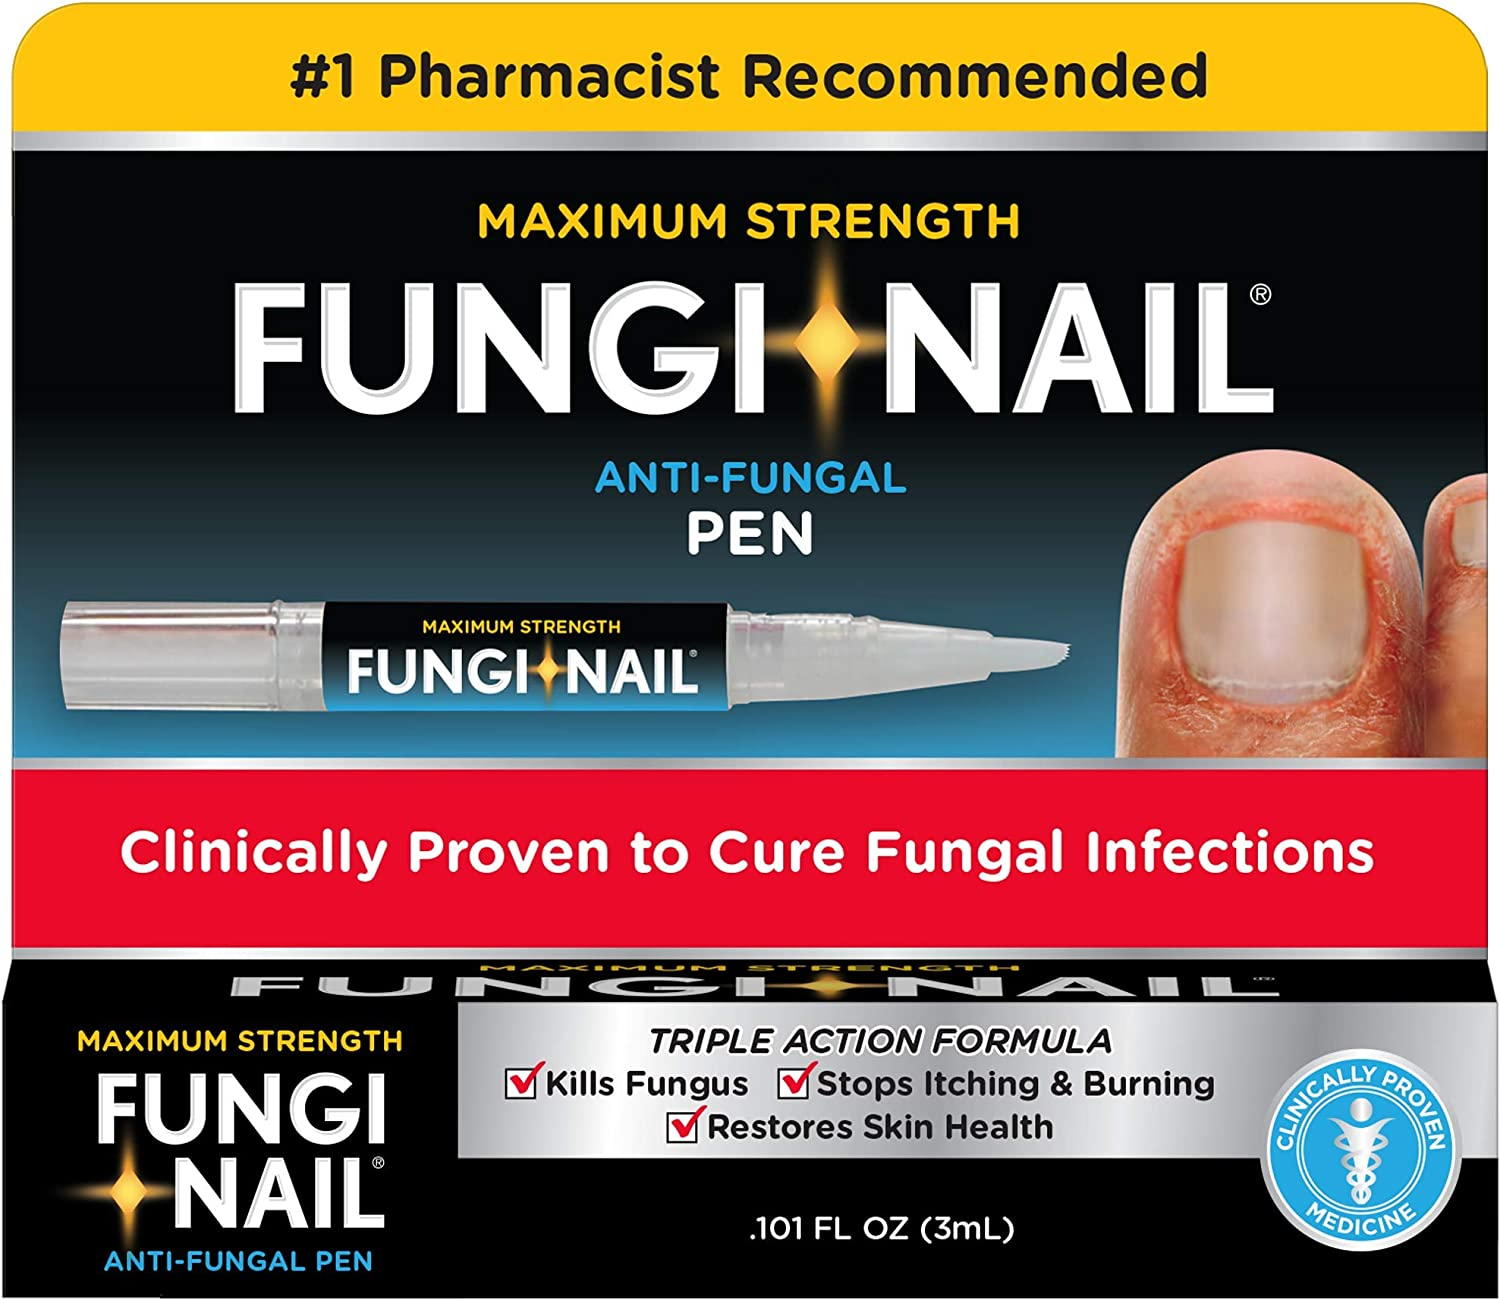 Fungi-Nail Pen Applicator Anti-Fungal Solution, 0.10 Ounce - Kills Fungus That Can Lead To Nail Fungus & Athlete's Foot Undecylenic Acid & Clinically Proven to Cure Fungal Infections: Health & Personal Care